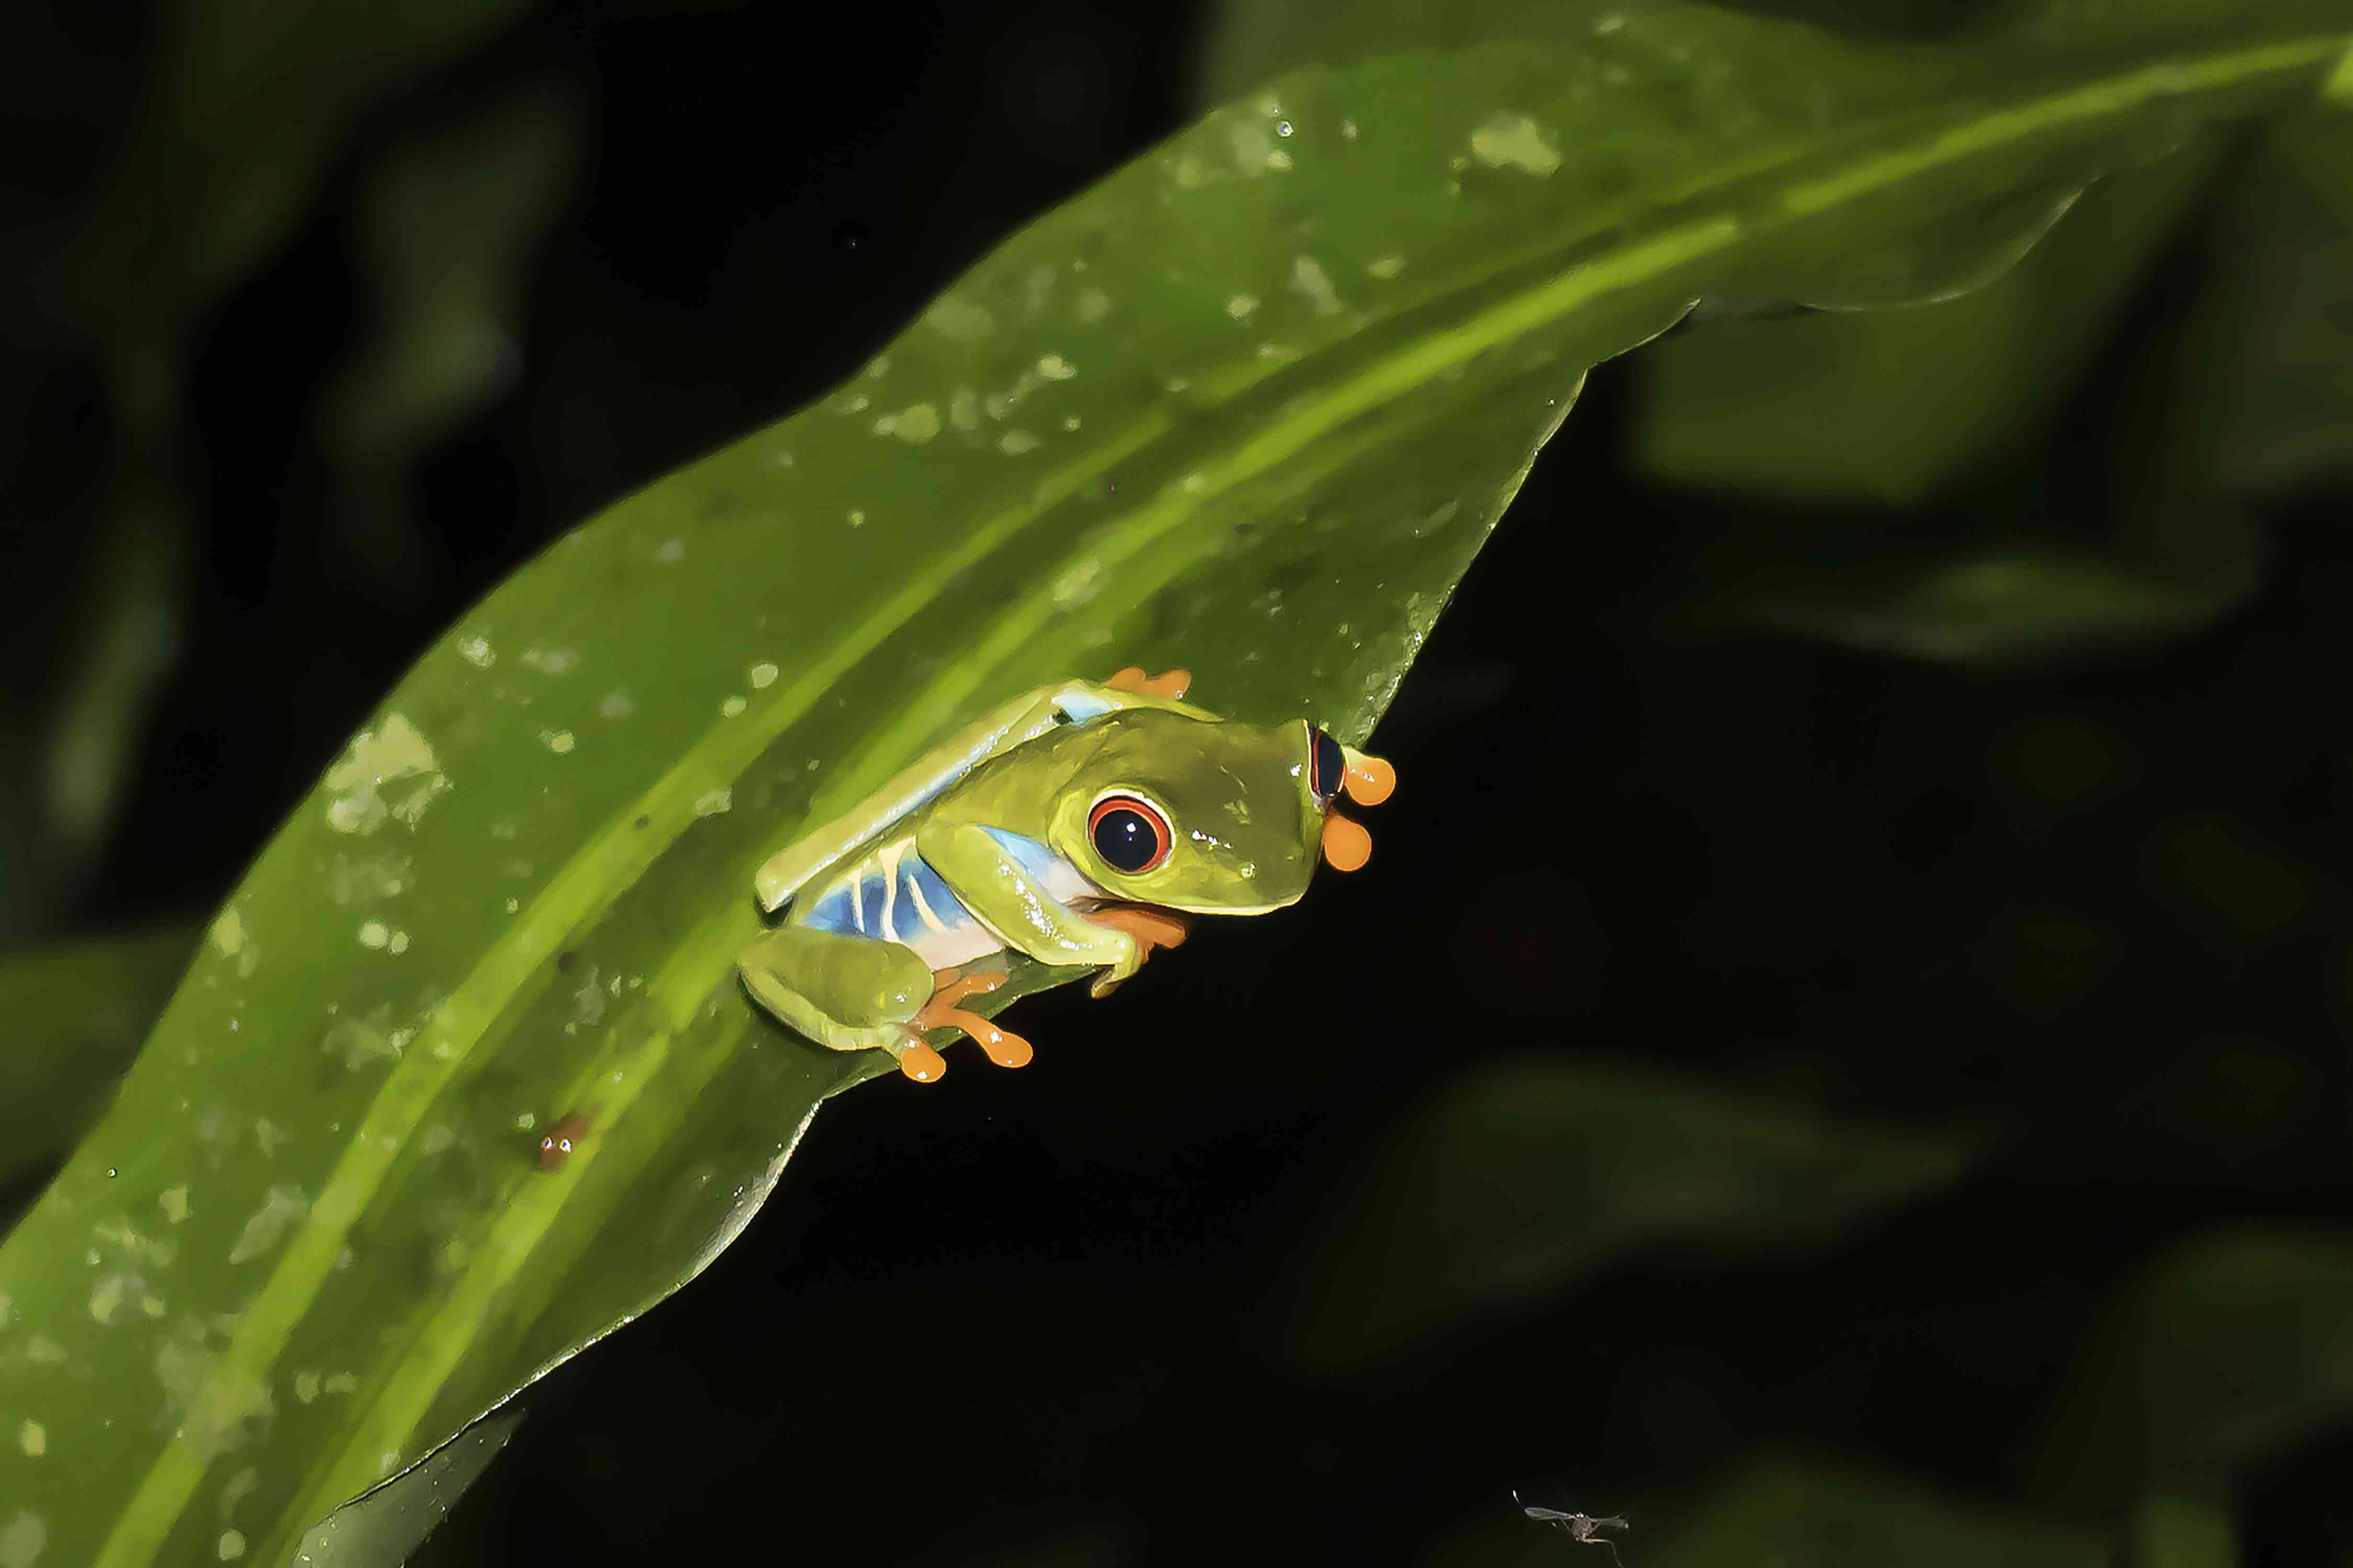 Red Eyed Tree Frog Perched on Edge of Leaf Eyeing Mosquito with Black Nighttime Background